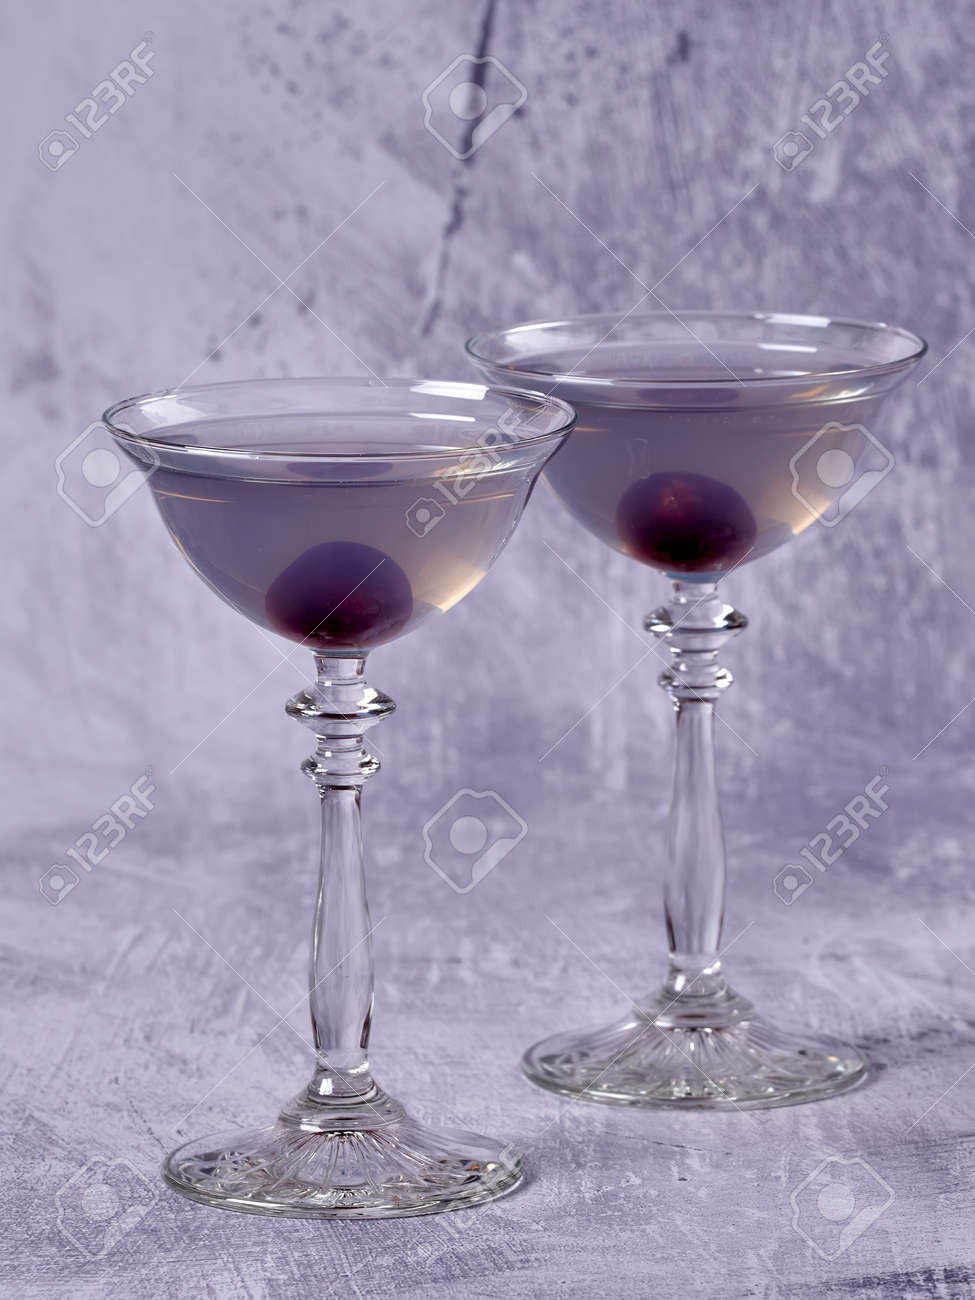 Aviation: a purple-bluish cocktail made with gin, maraschino, creme de violette and a dash of lemon juice, served with a maraschino cherry - 157025467